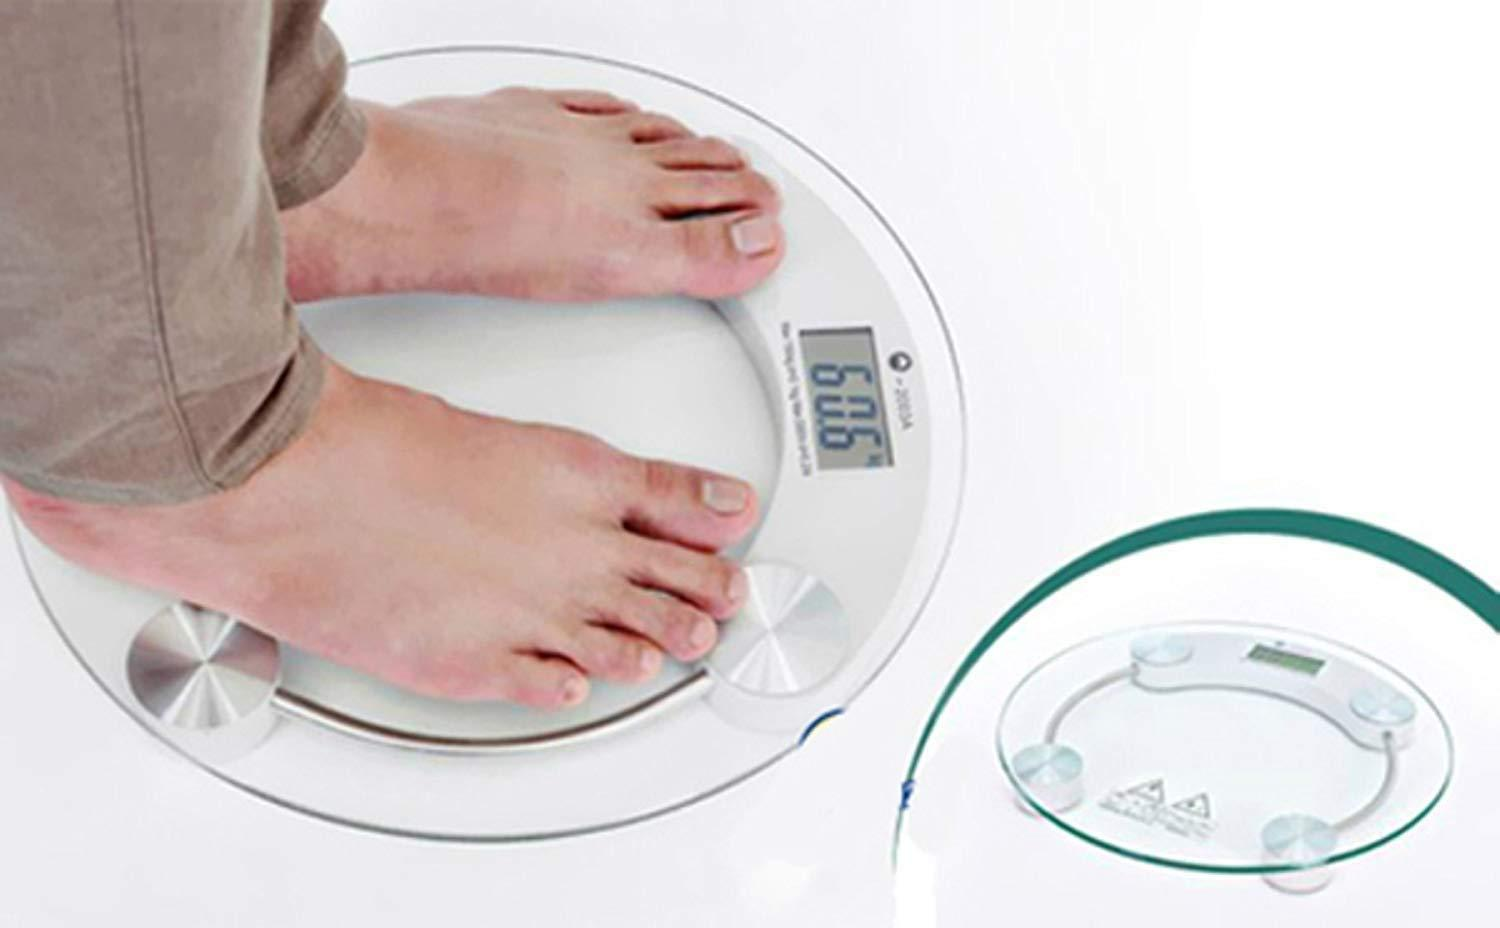 8mm Electronic Tempered Glass Digital Weighing Scale - Unnati Enterprises